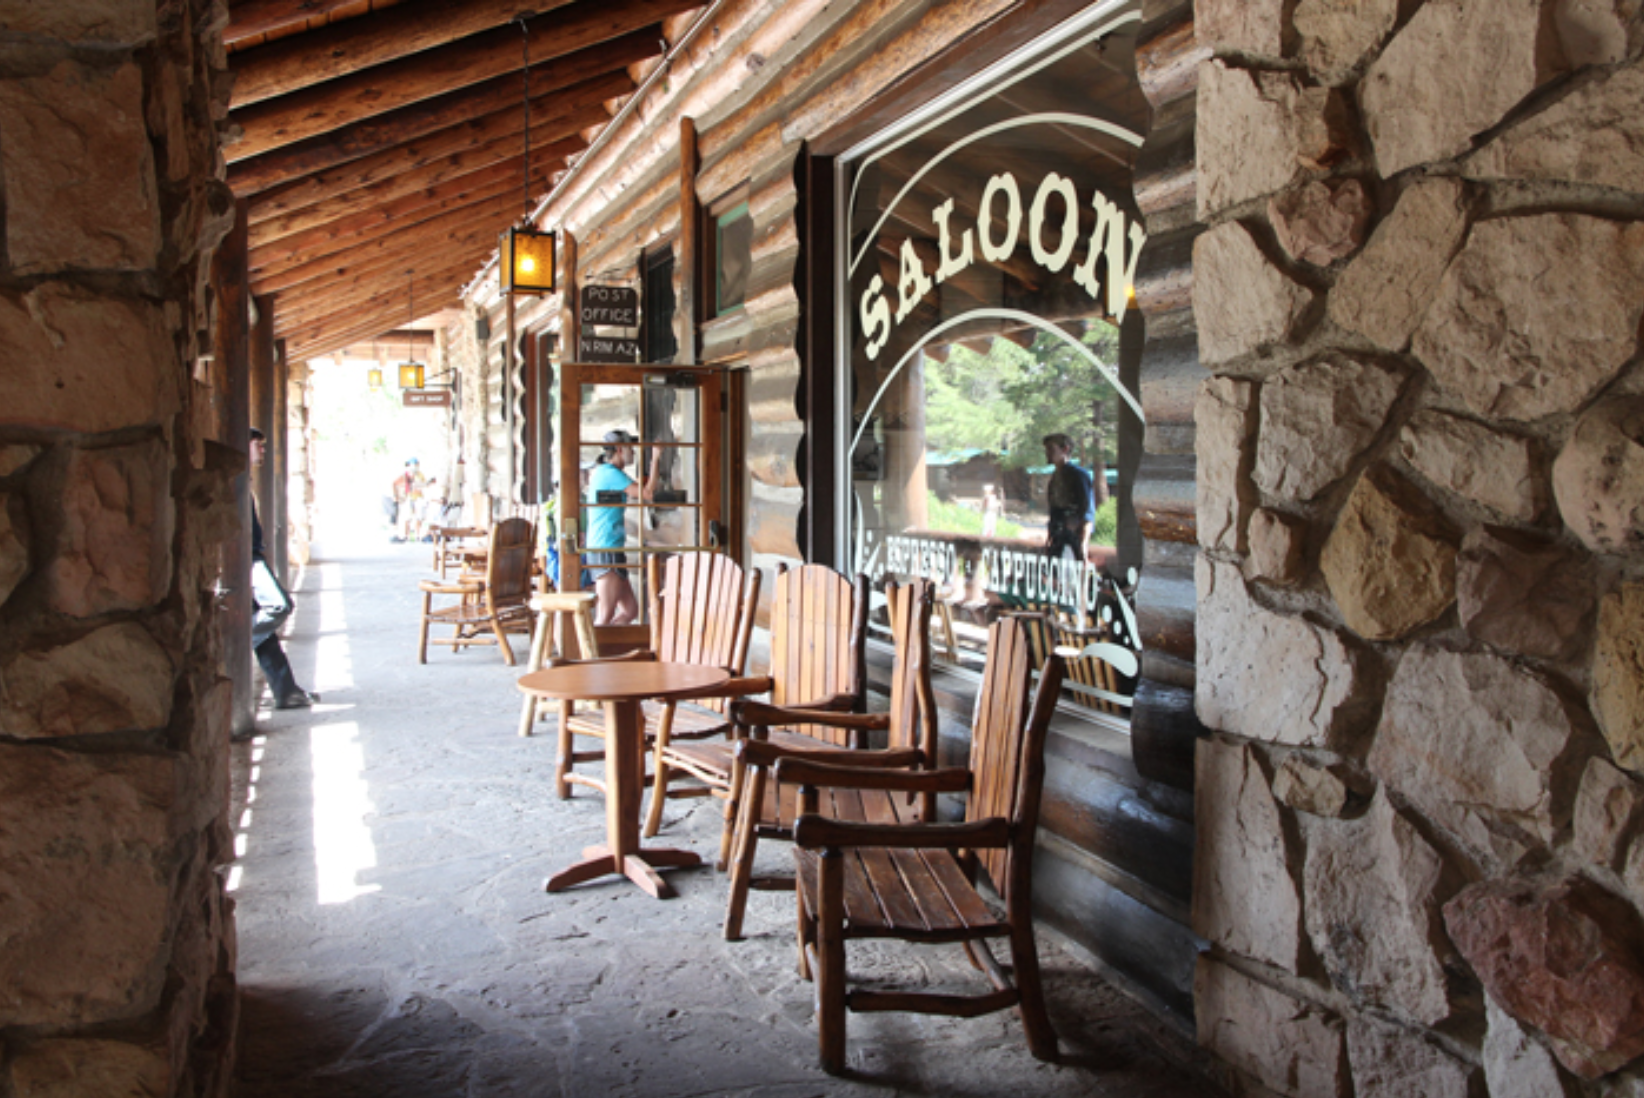 Grand Canyon Restaurant Saloon